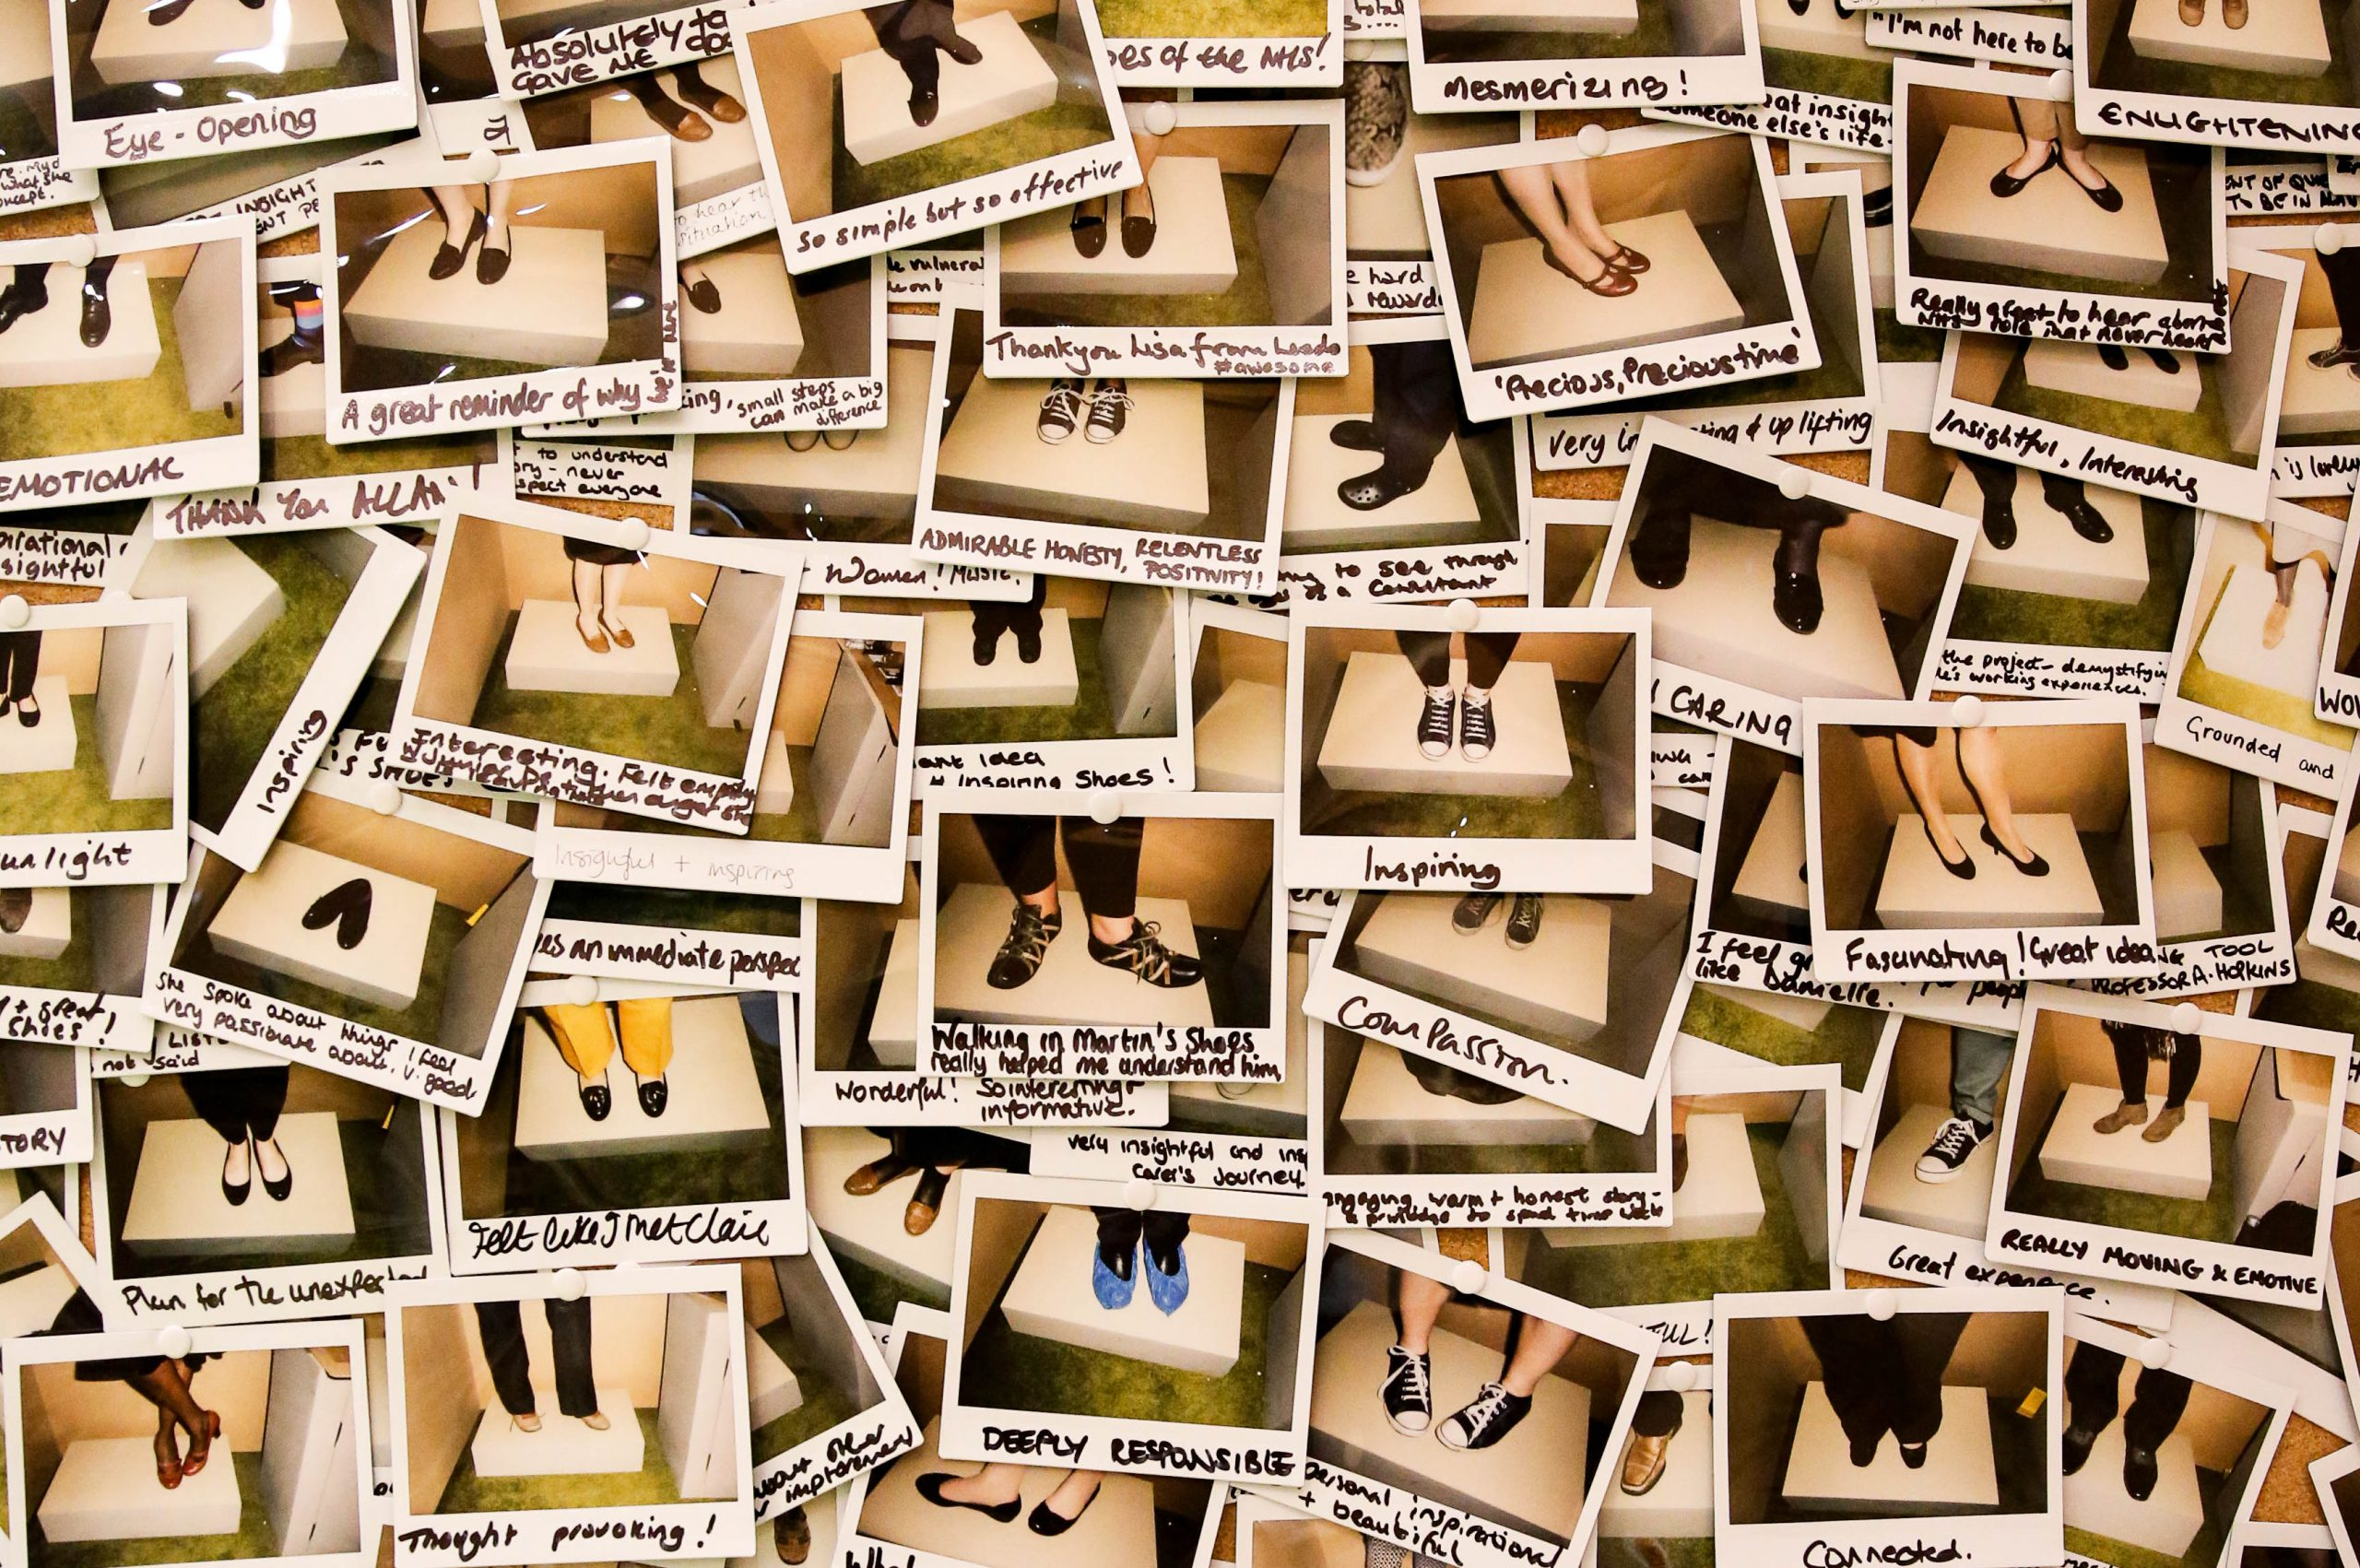 Mass of poloroid photos of feet in shoes, with handwritten audience messages